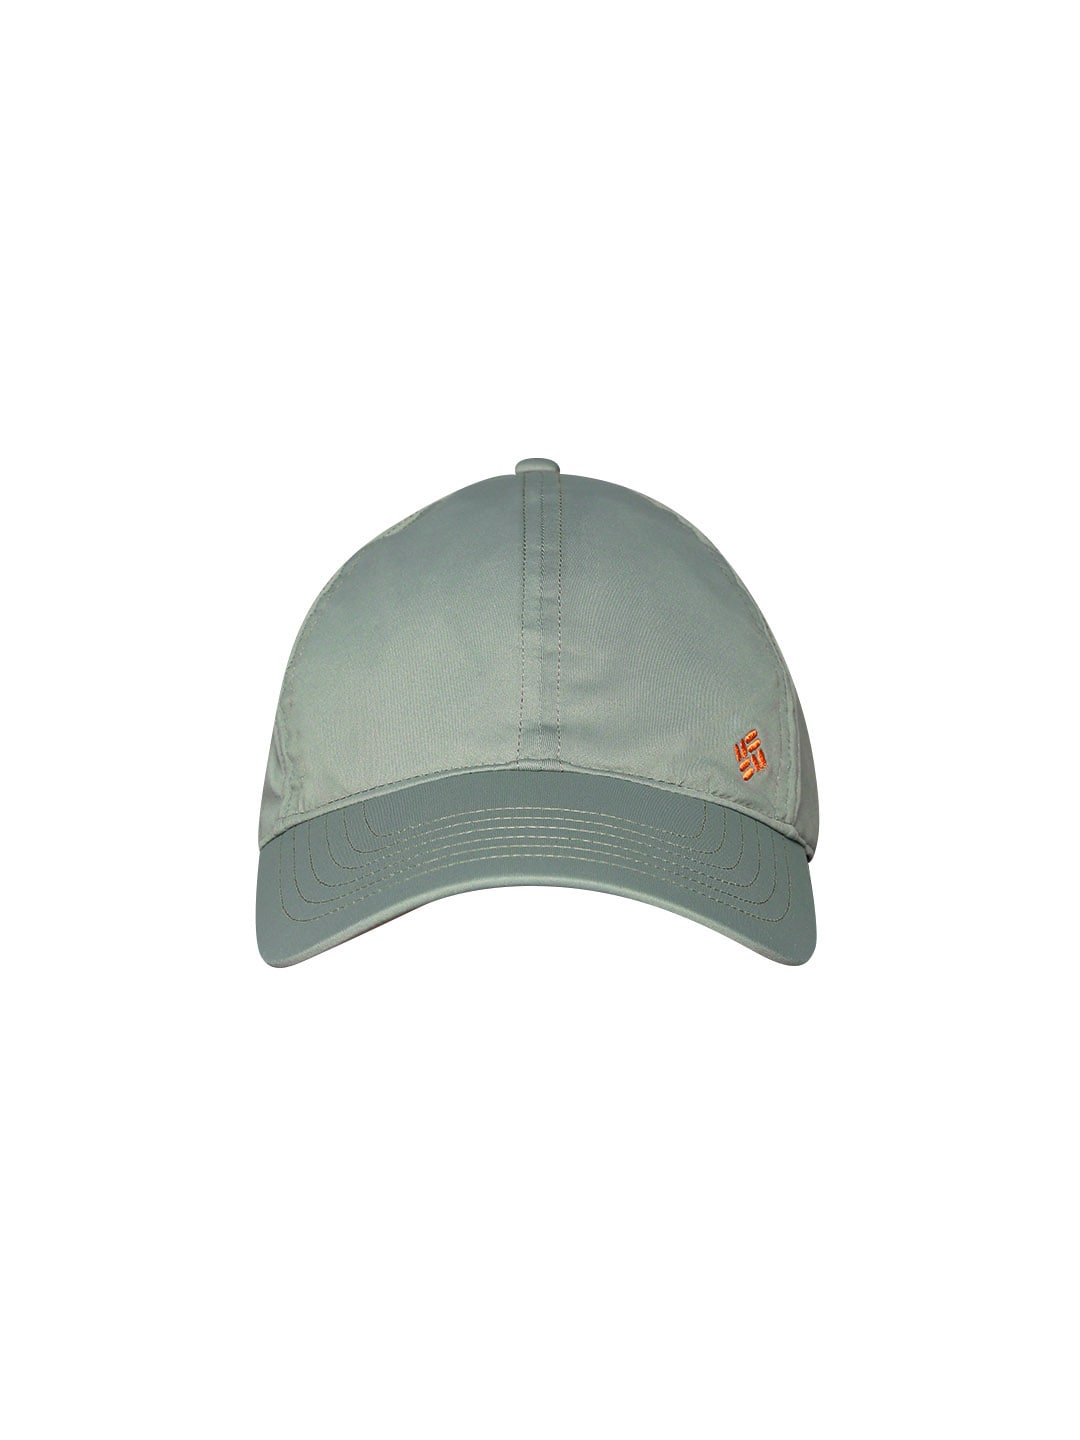 4d2b72995c6 Columbia - Buy Columbia Clothing   Accessories online